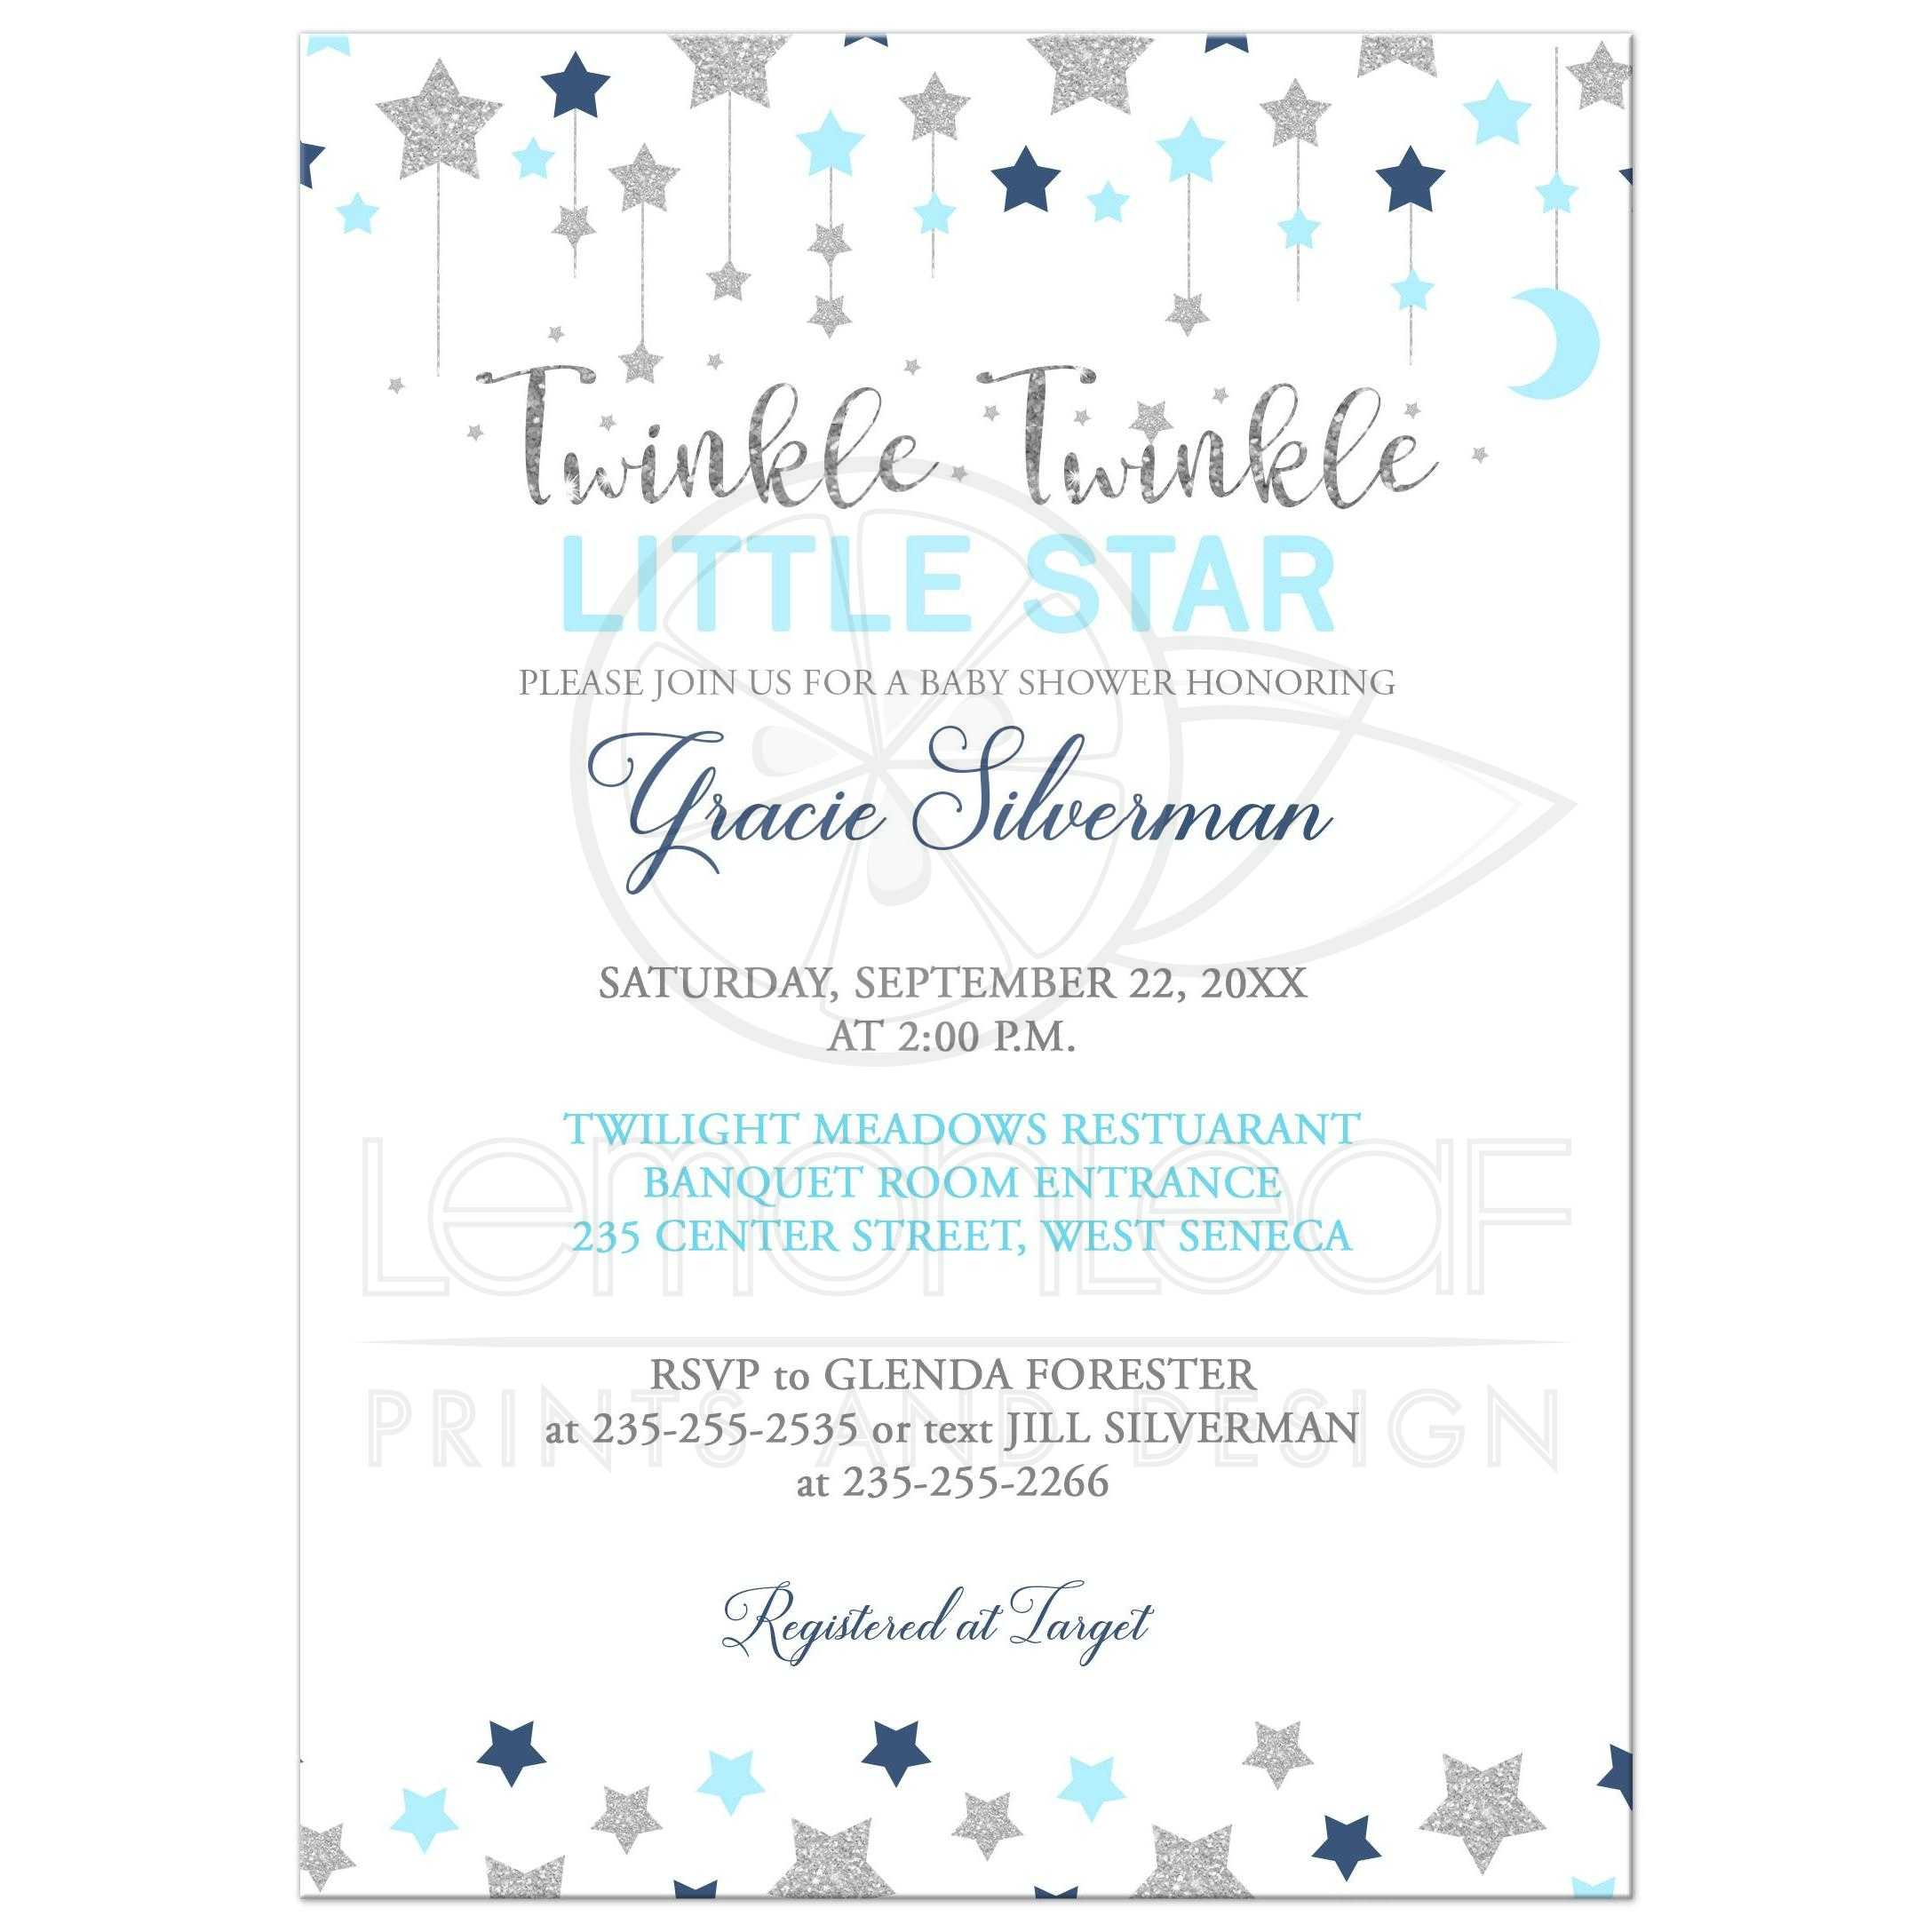 photo about Free Printable Twinkle Twinkle Little Star Baby Shower Invitations identify Twinkle Twinkle Tiny Star Silver and Blue Boy Kid Shower Invitation